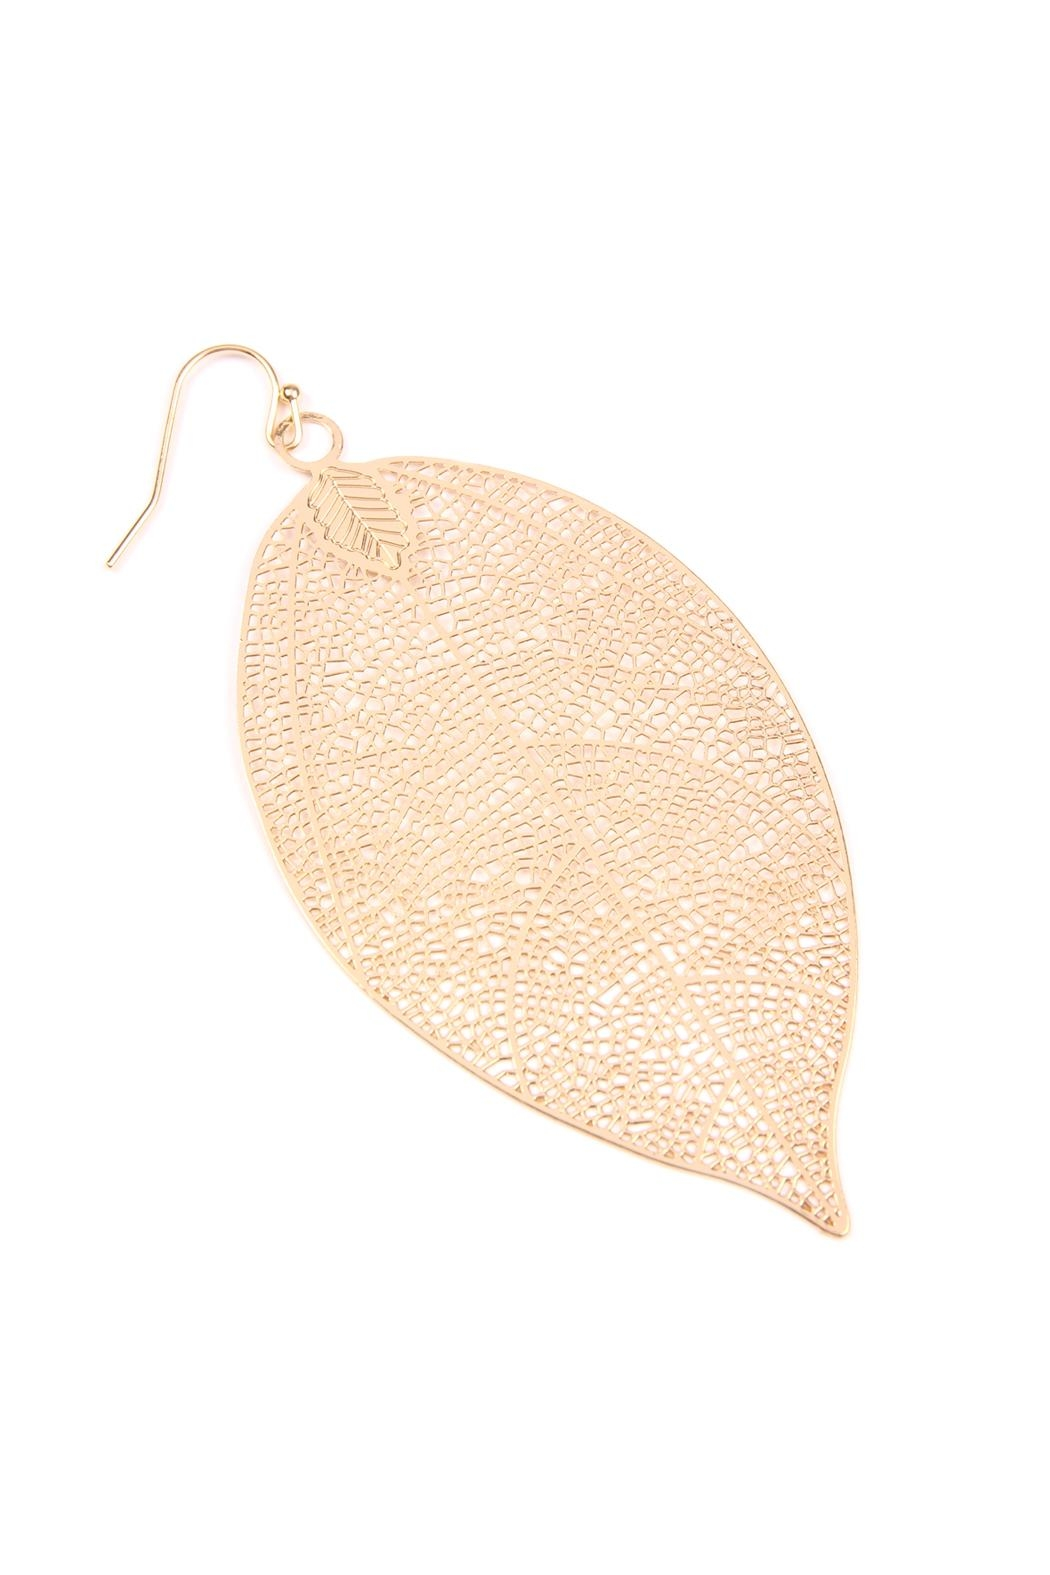 Riah Fashion Dainty-Filigree Leaf-Hook Earrings - Front Full Image